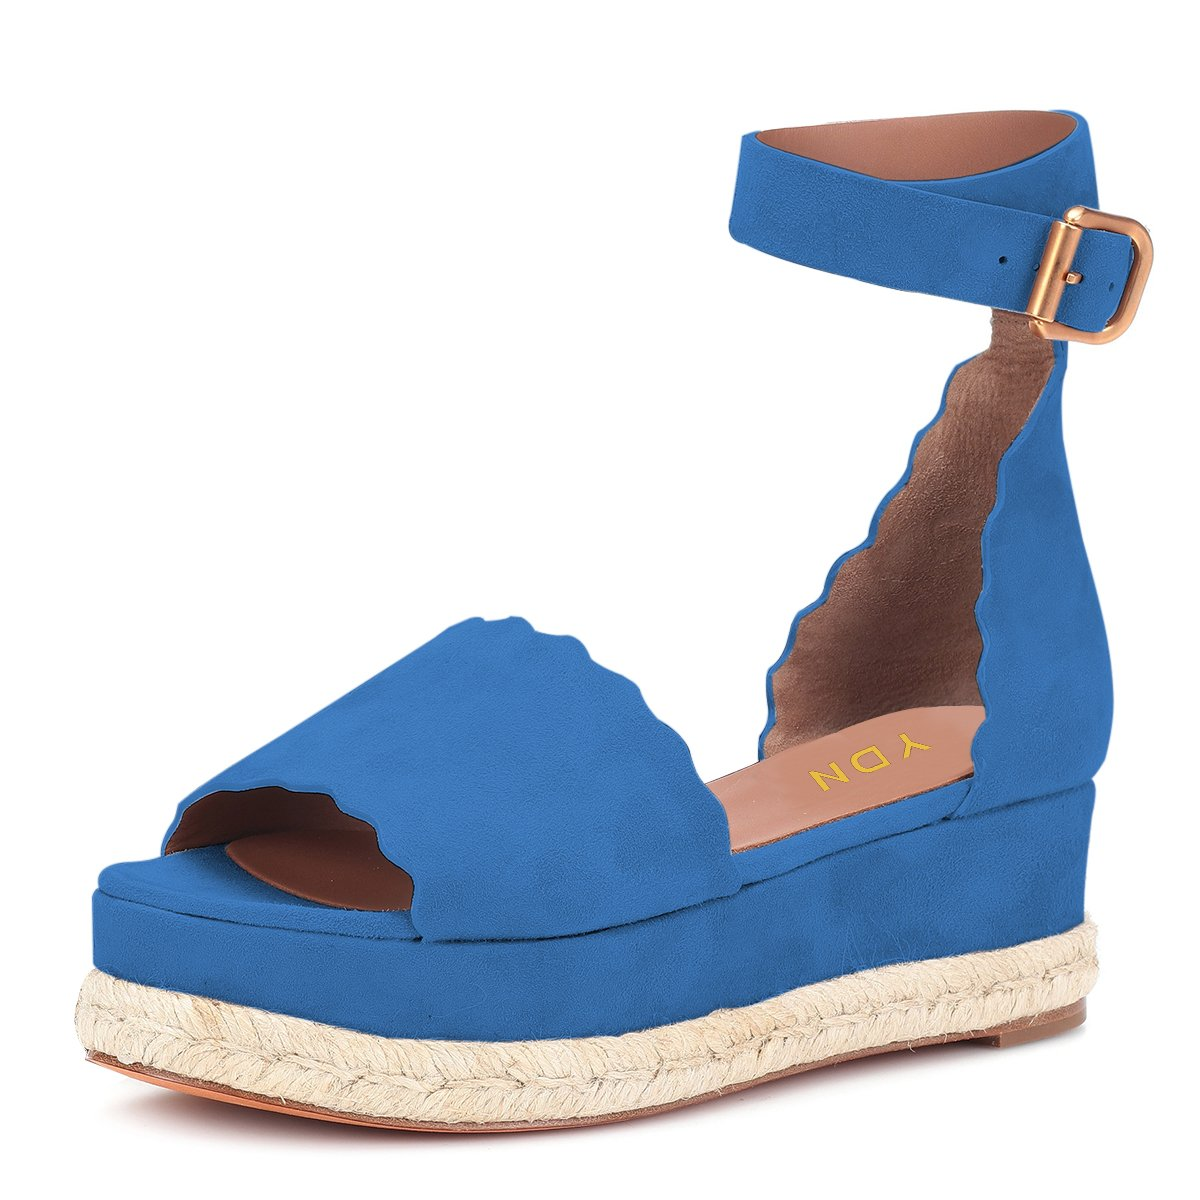 YDN Women Espadrille Peep Toe Ankle Straps Wedge Sandals Low Heels Platform Shoes with Buckle B07DCNP5DF 15 M US|Blue